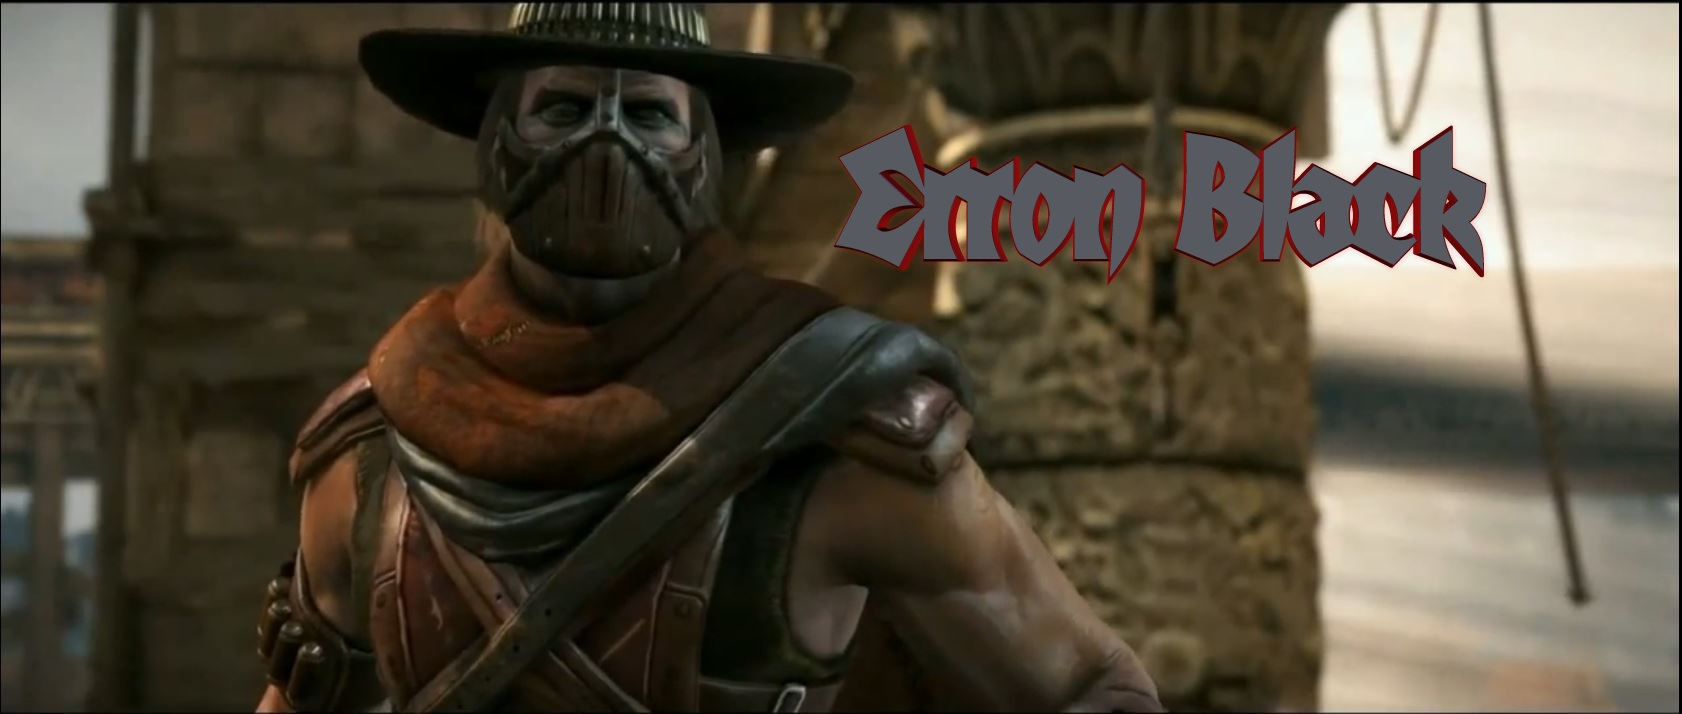 Erron Black Trailer – Mortal Kombat X